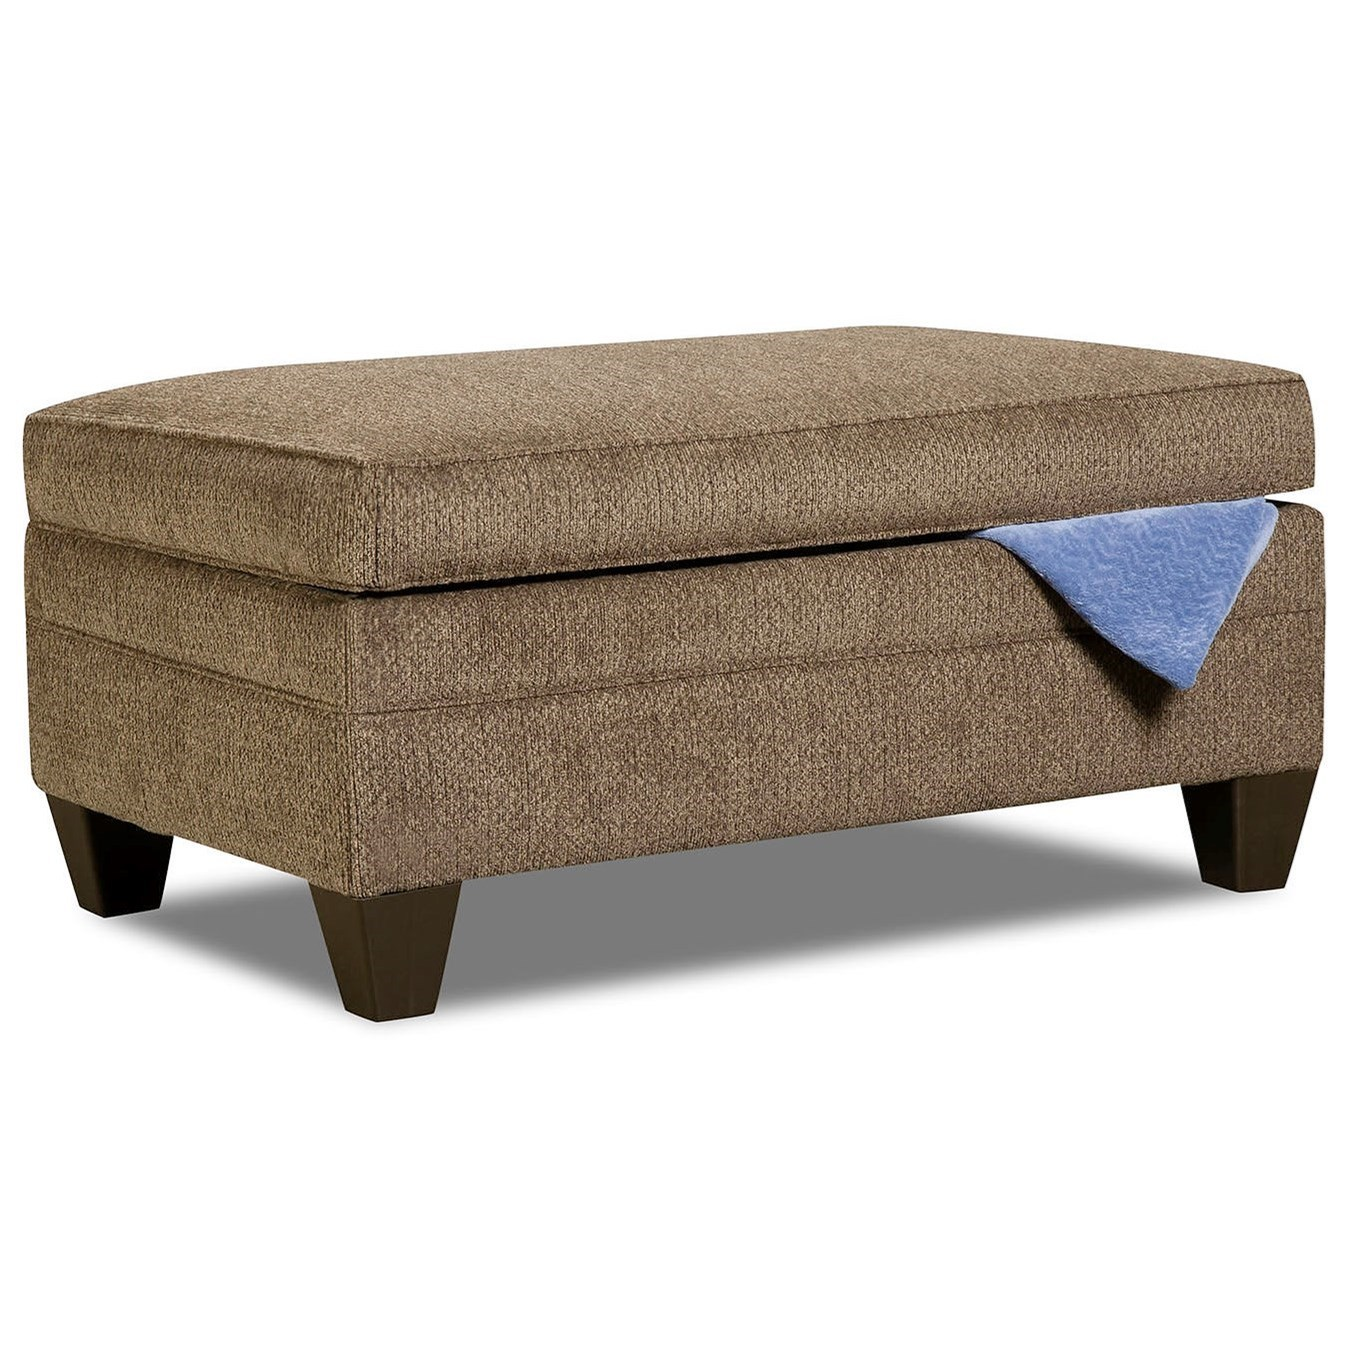 6485 Transitional Storage Ottoman by Simmons Upholstery at Dunk & Bright Furniture